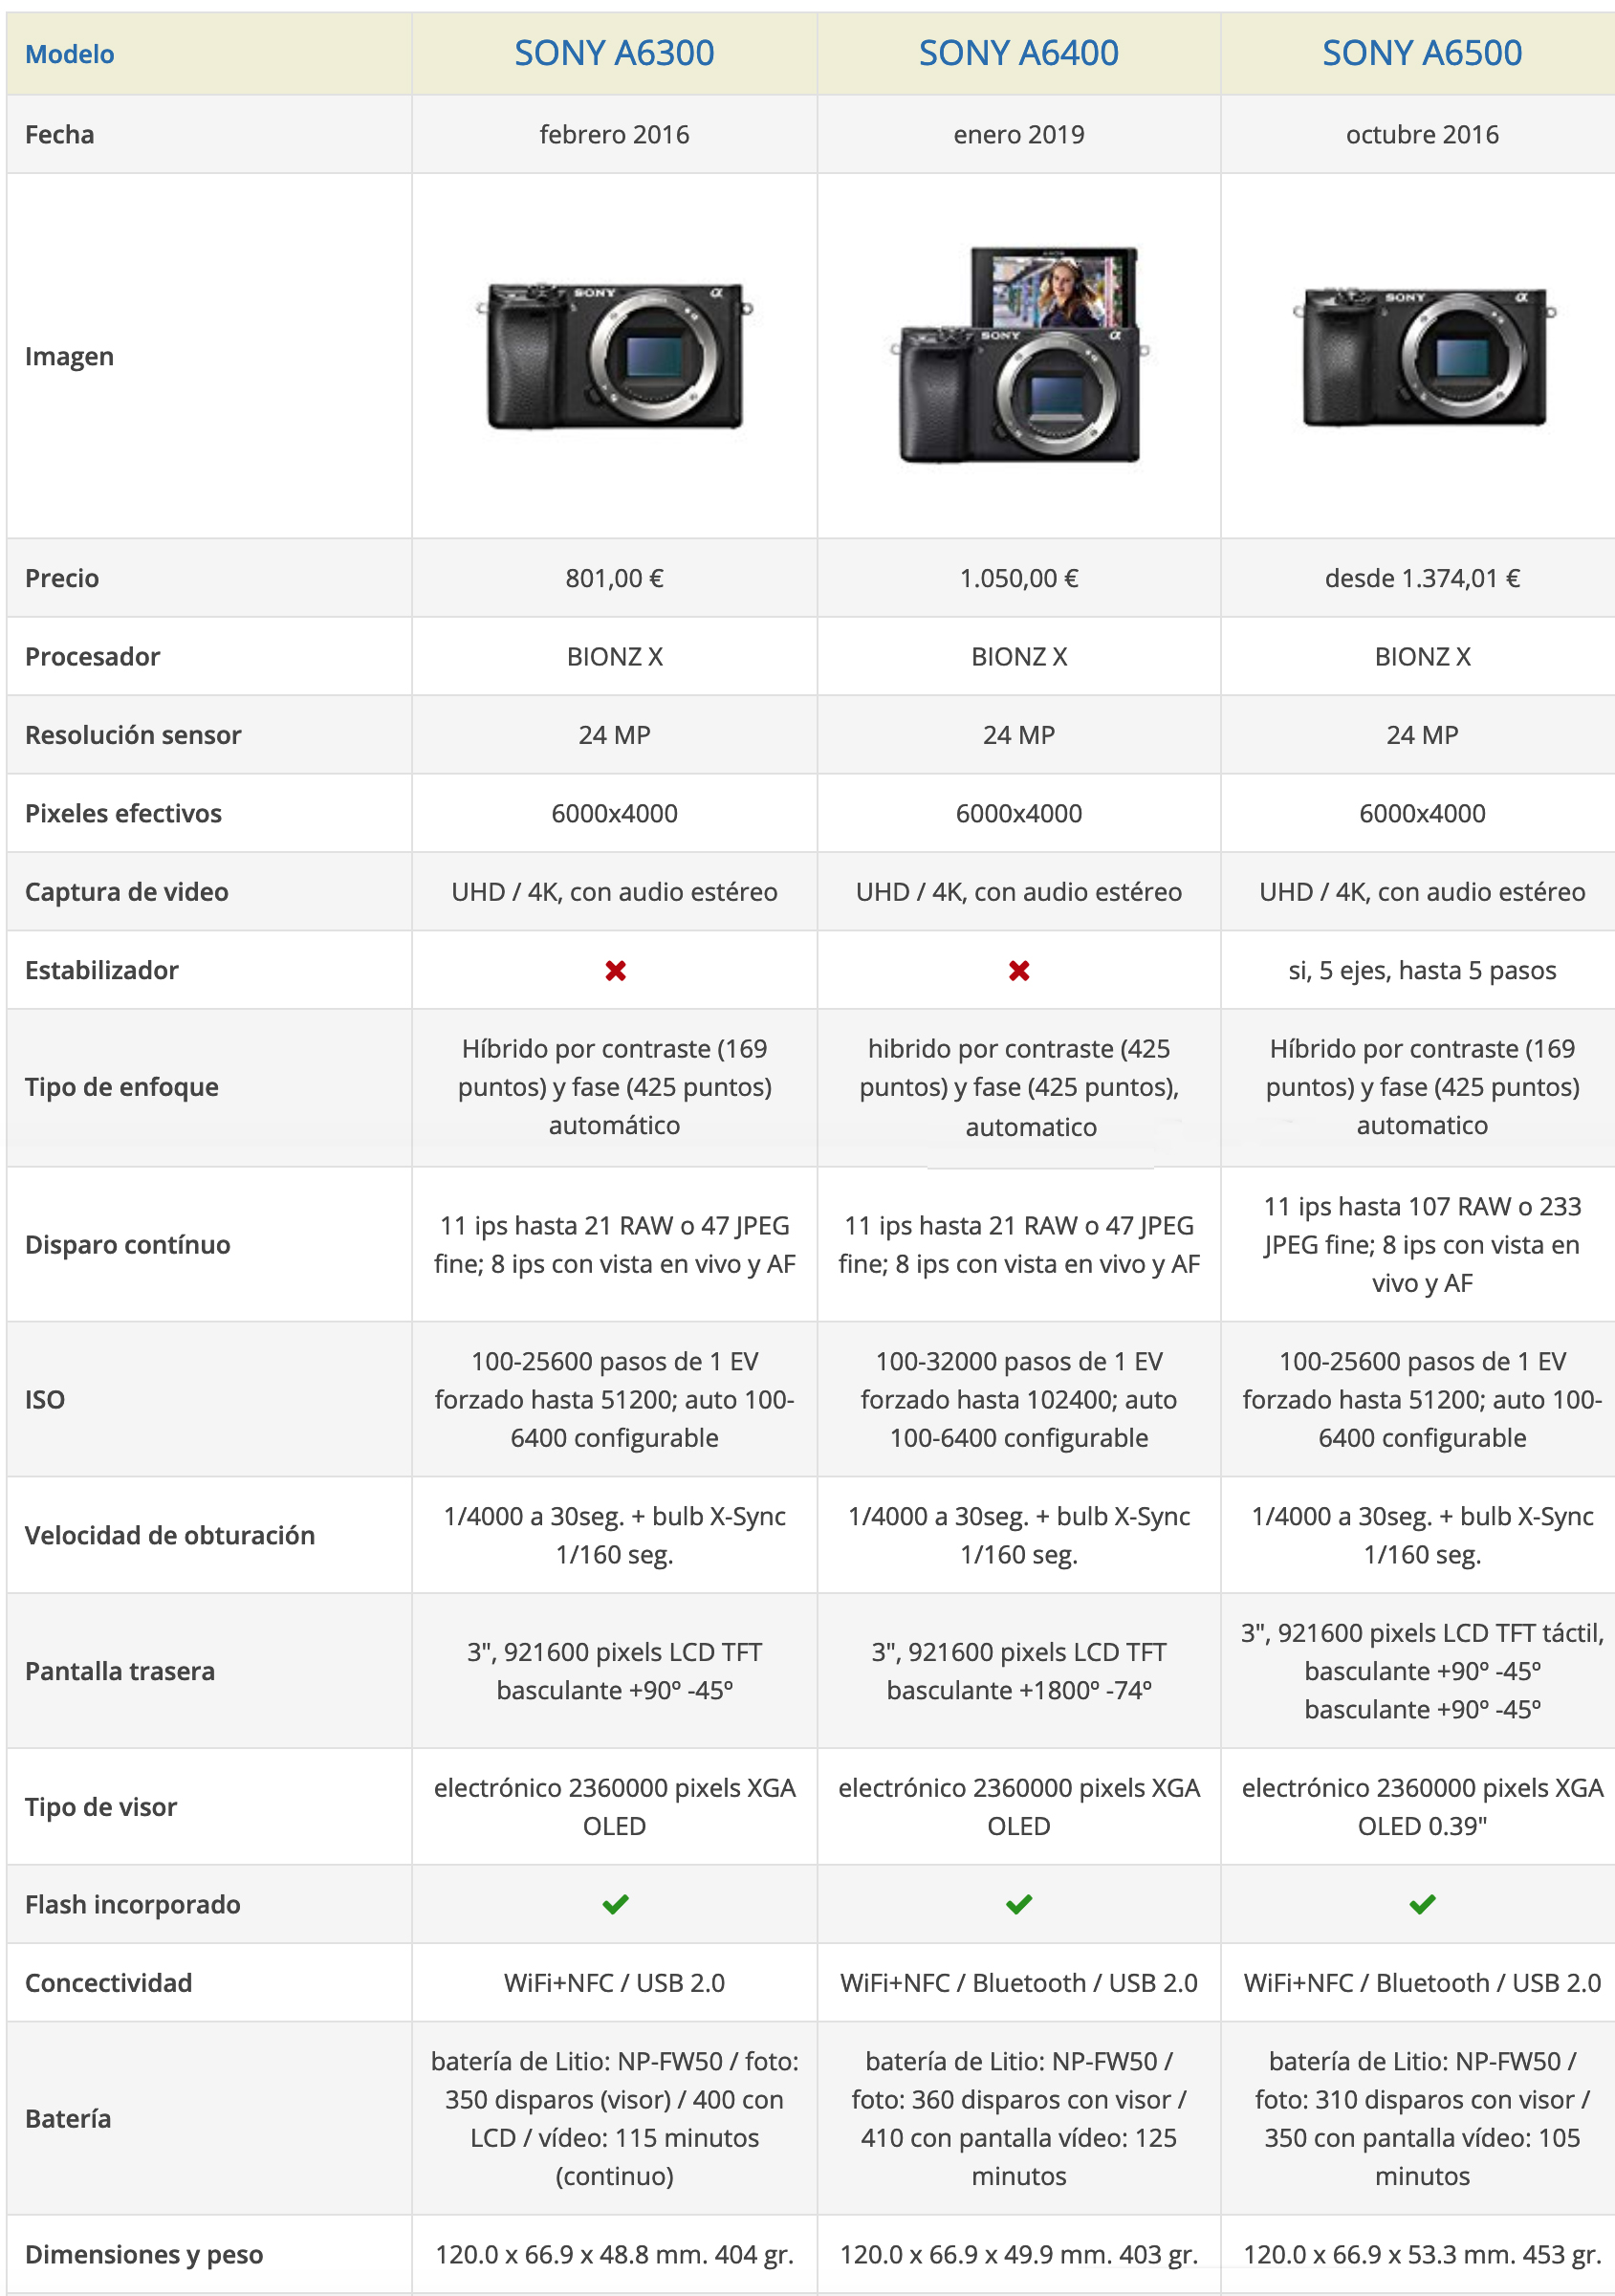 Comparativa Sony A6300,A6400,A6500